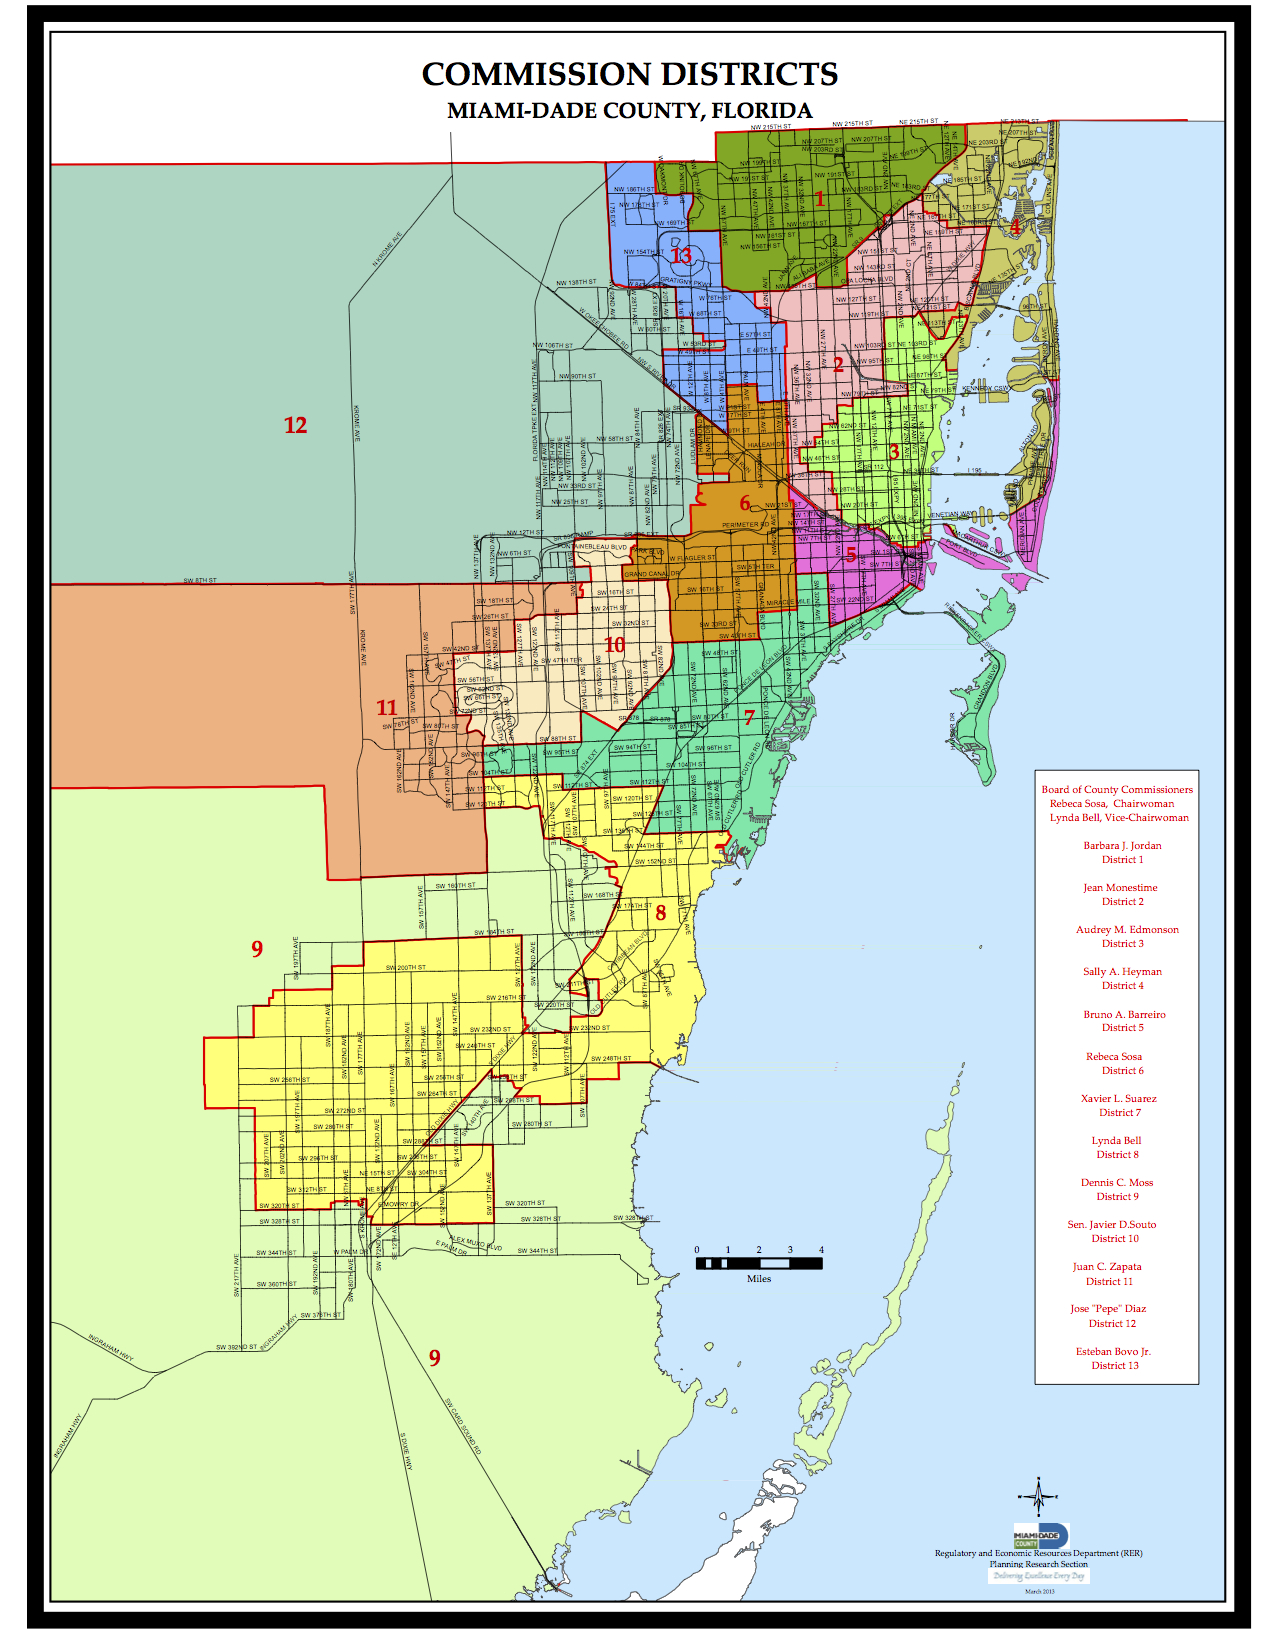 The county's official district map still shows Lynda Bell as commissioner of District 8.